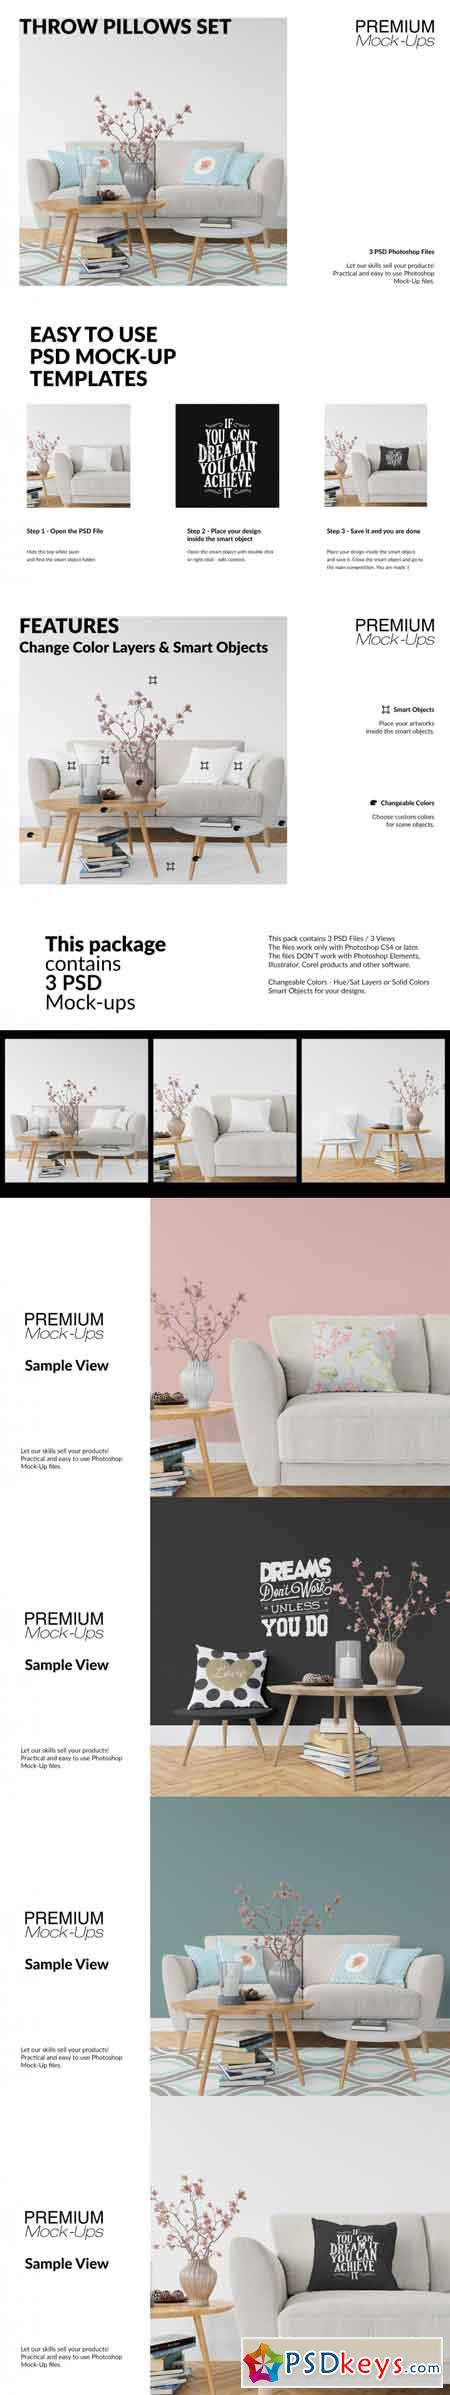 Throw Pillows Mockup Set 3489772